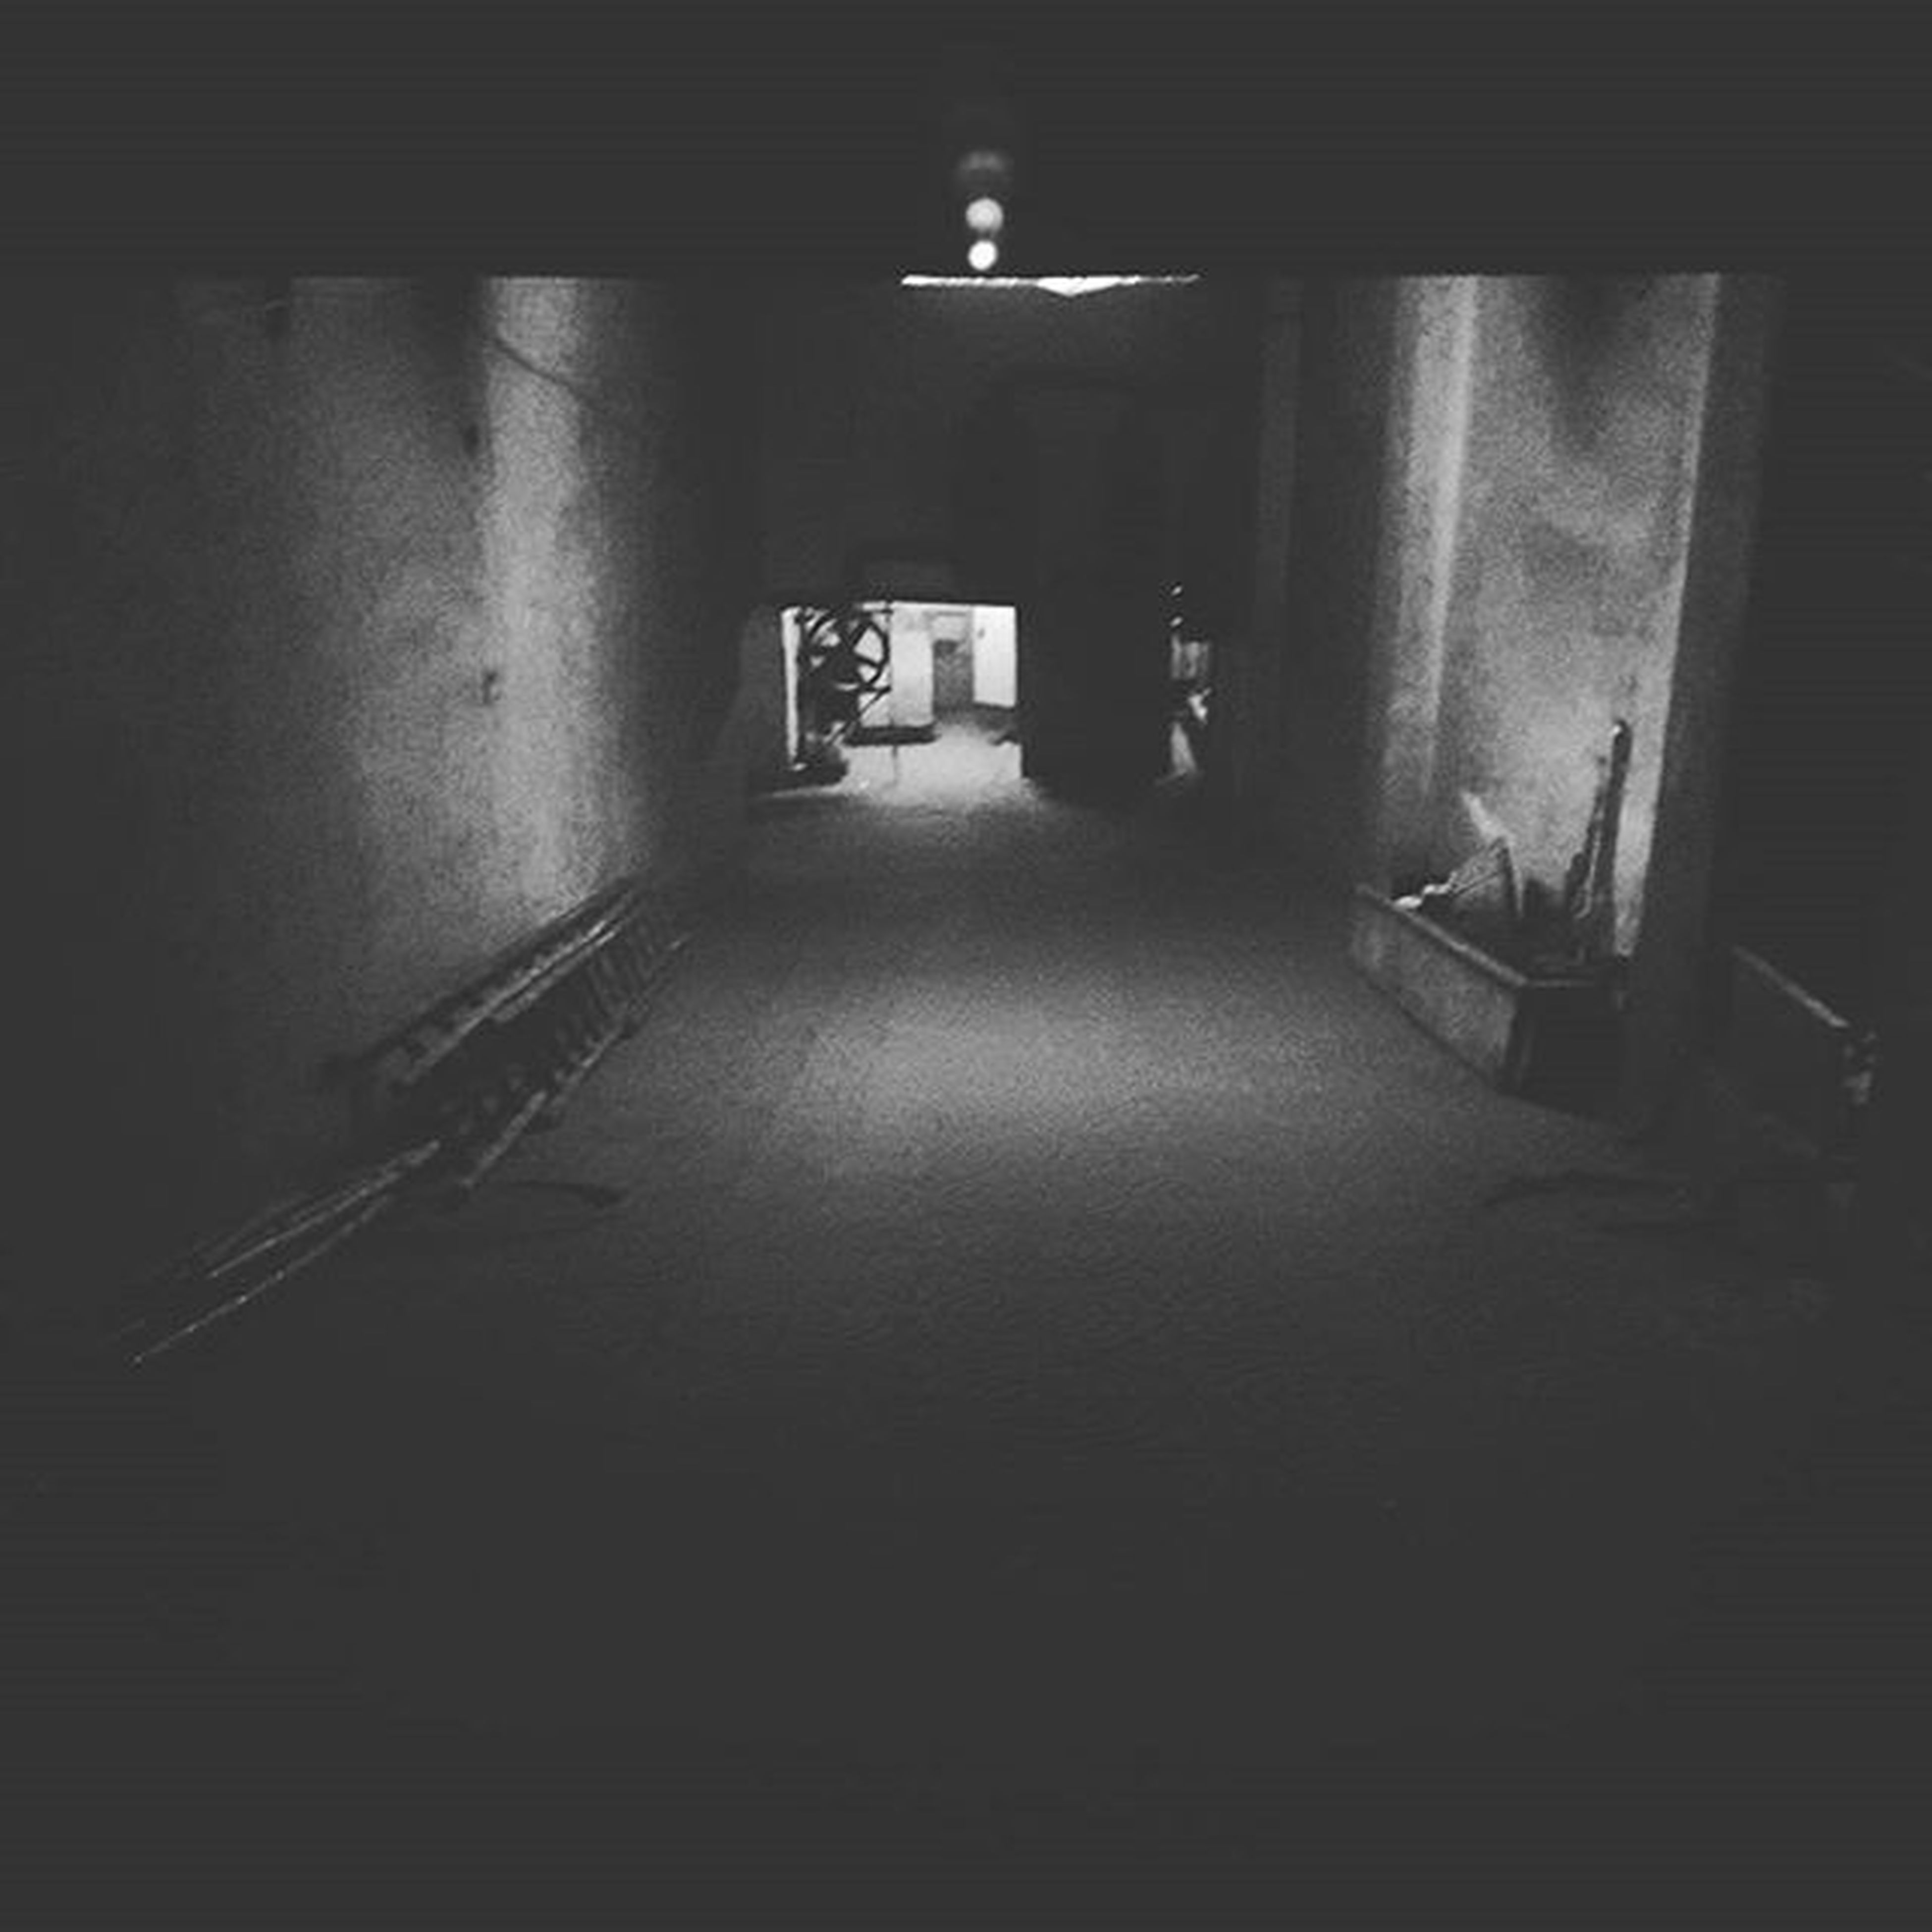 indoors, architecture, built structure, illuminated, the way forward, corridor, empty, absence, door, wall - building feature, narrow, lighting equipment, diminishing perspective, building, wall, interior, flooring, house, night, no people